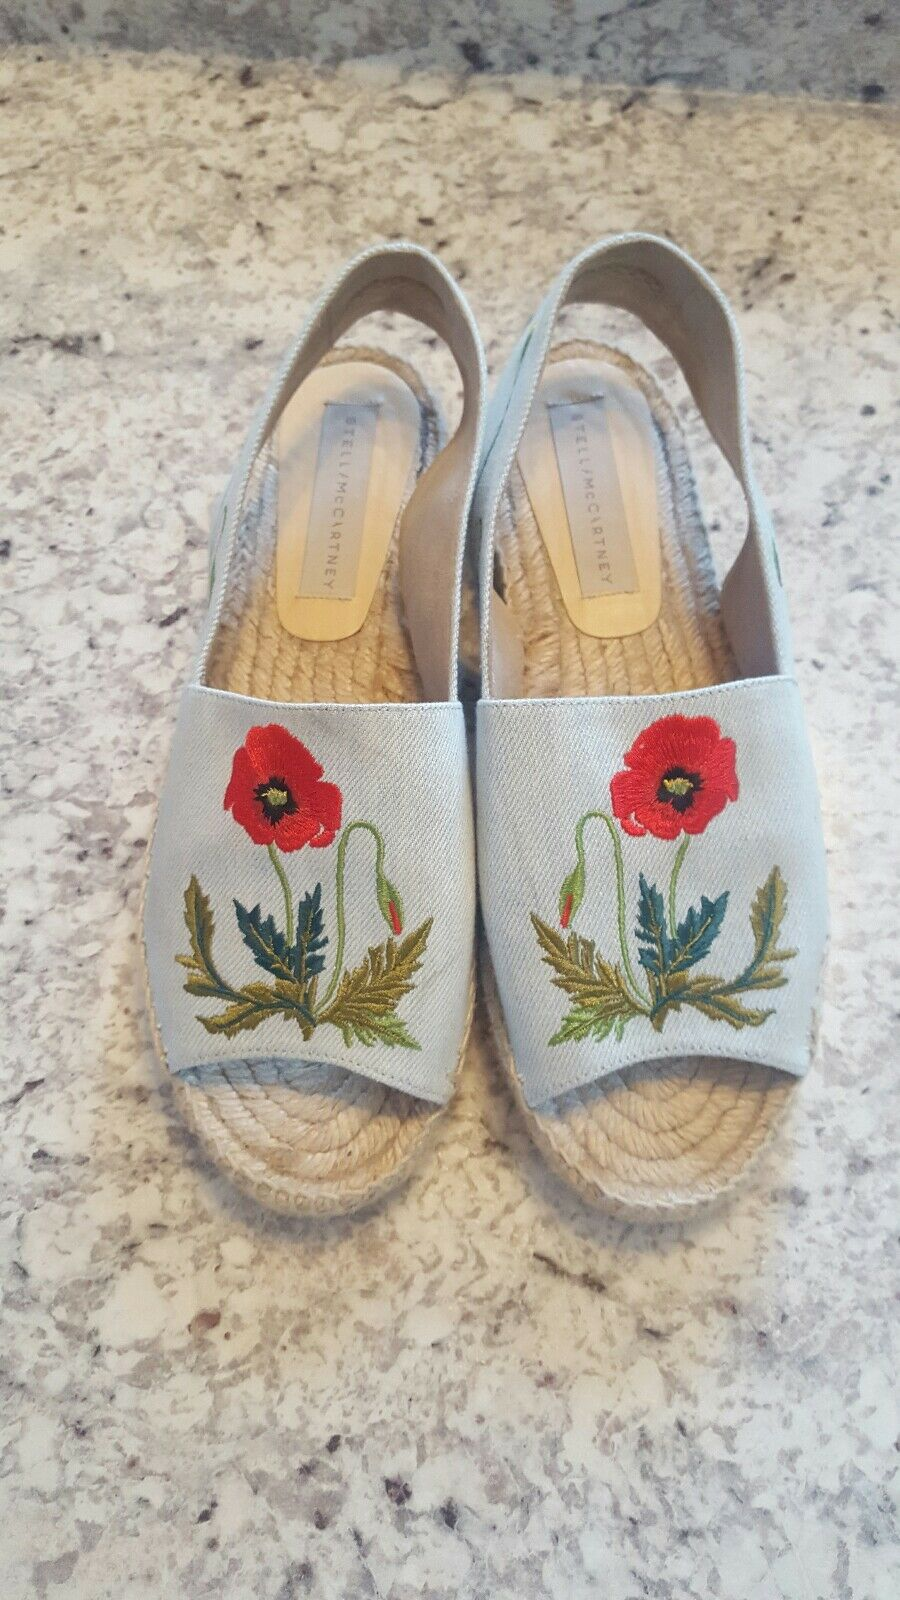 Stella McCartney Embroidered Floral Denim Slingback Espadrilles Eur 39 US 9  758